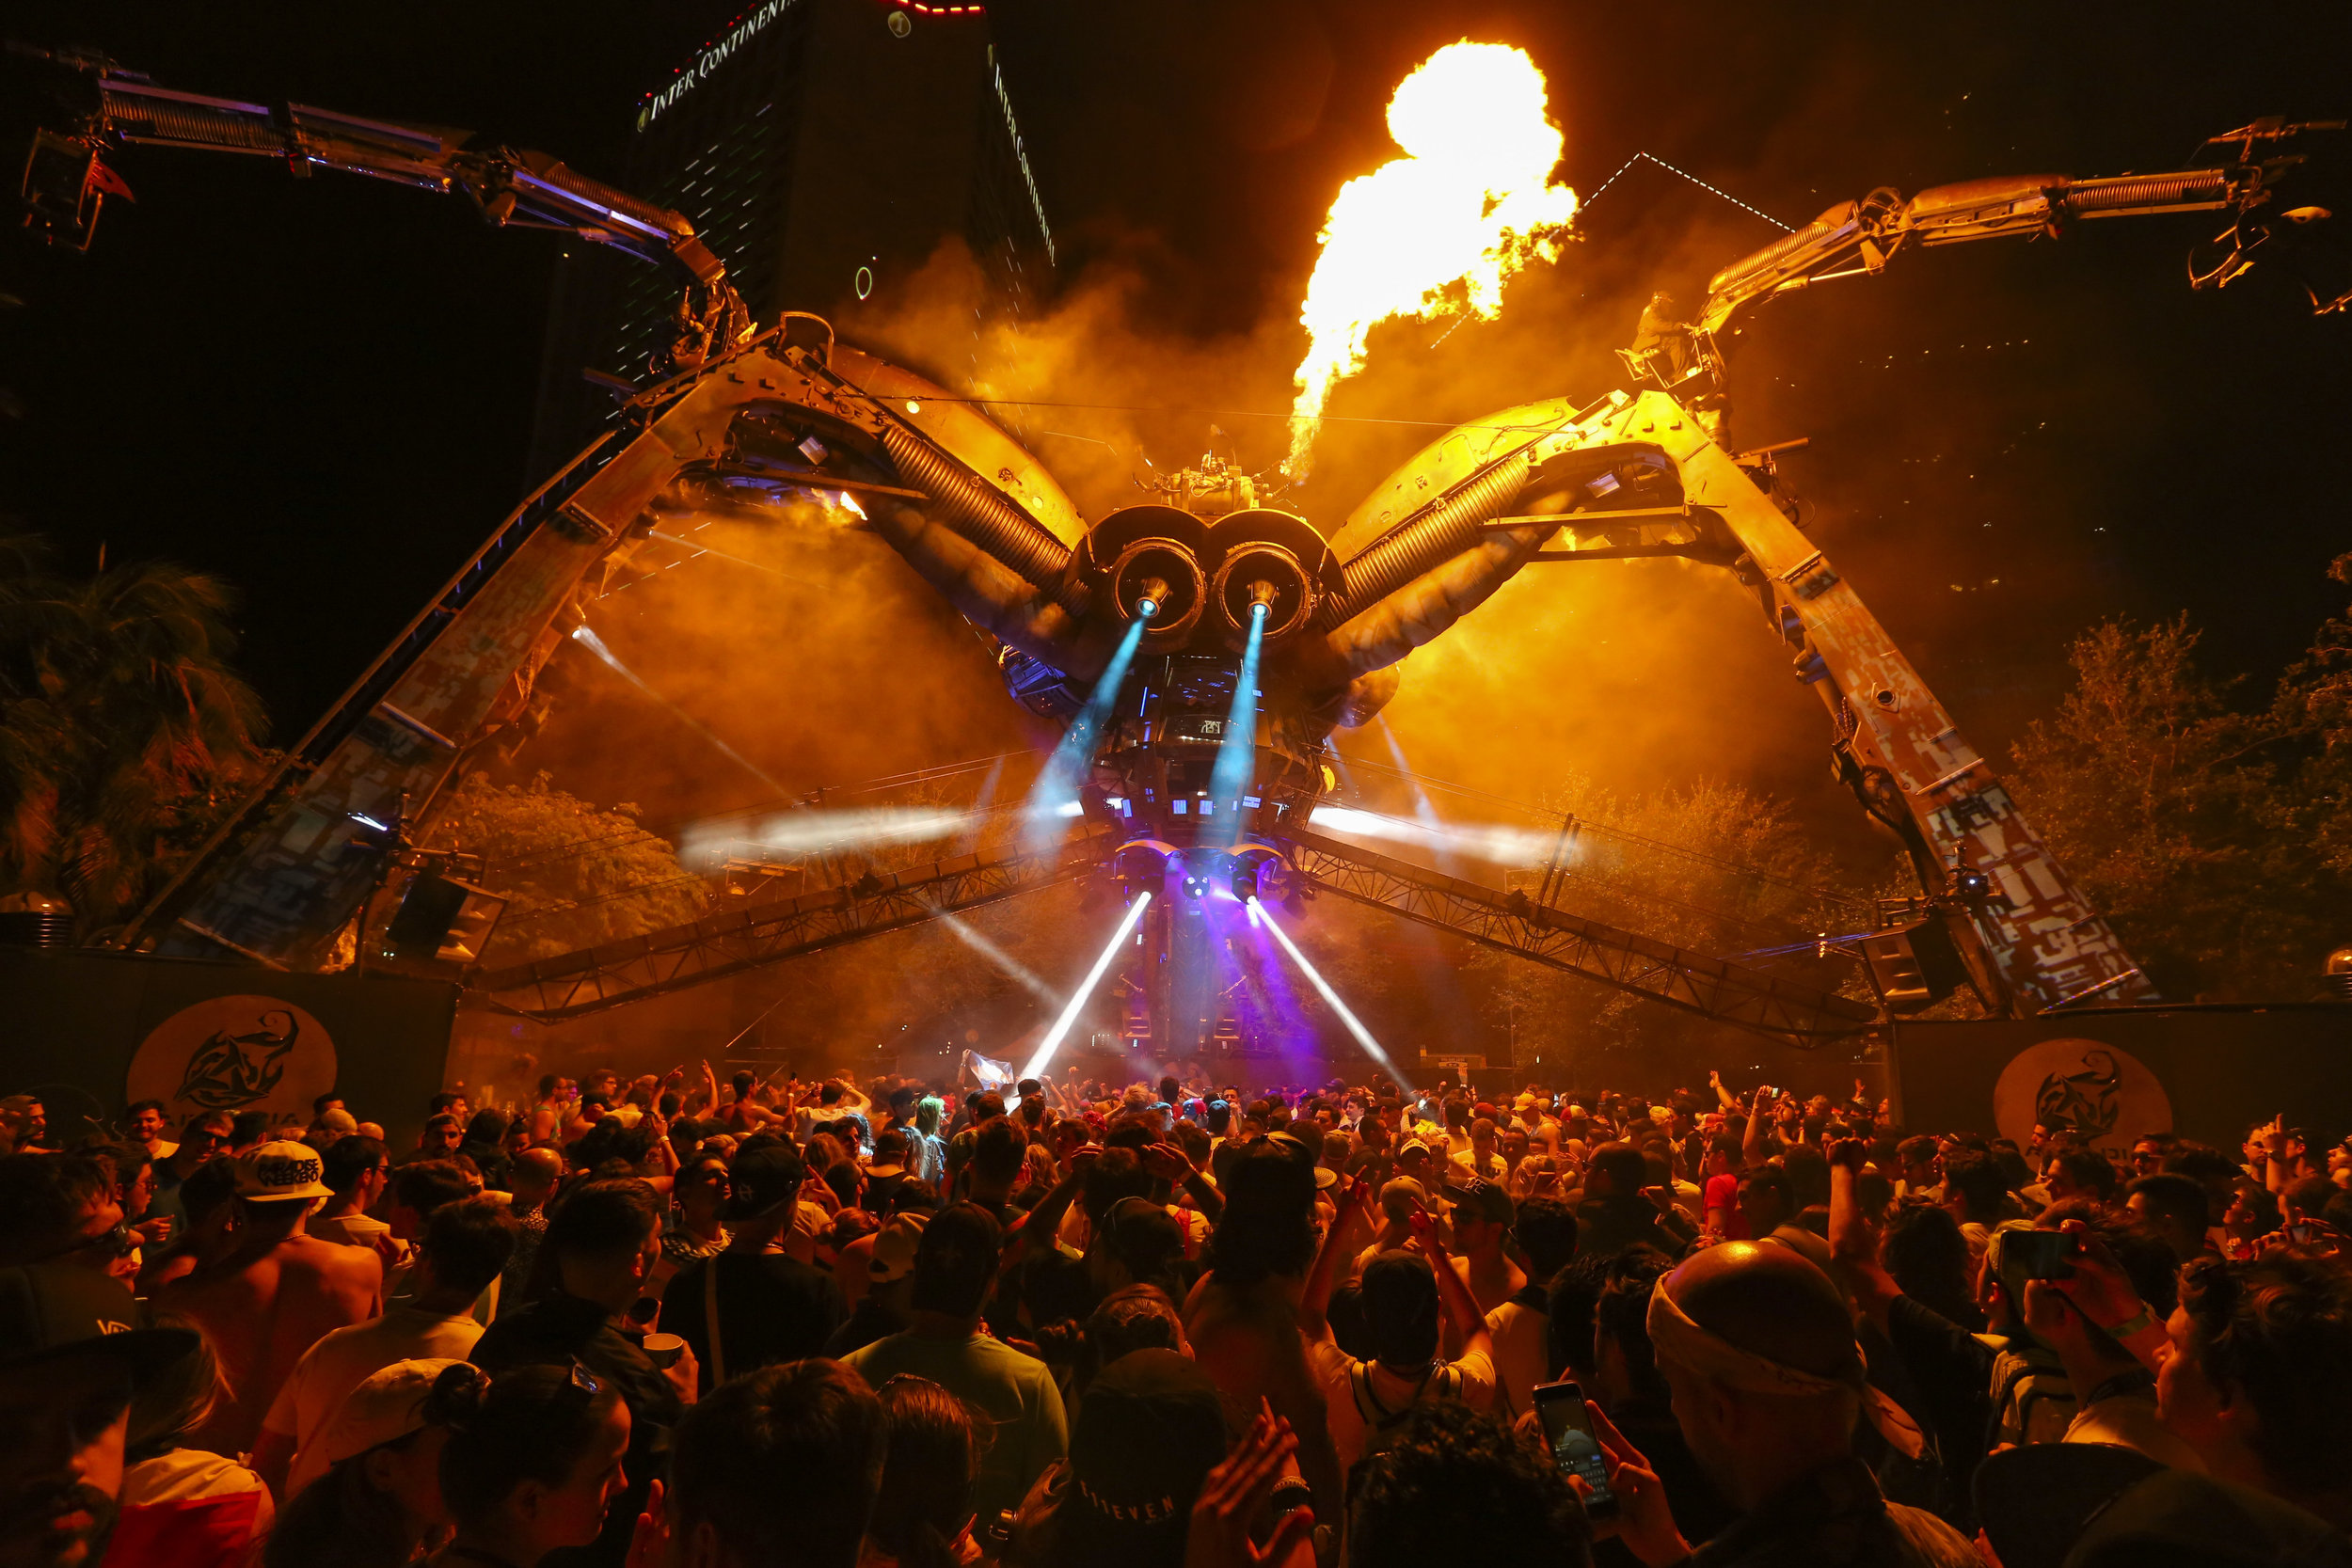 DJ Maceo Plex performs on the Arcadia Spider during the first day of the Ultra Music Festival in Bayfront Park on Friday, March 24, 2017.